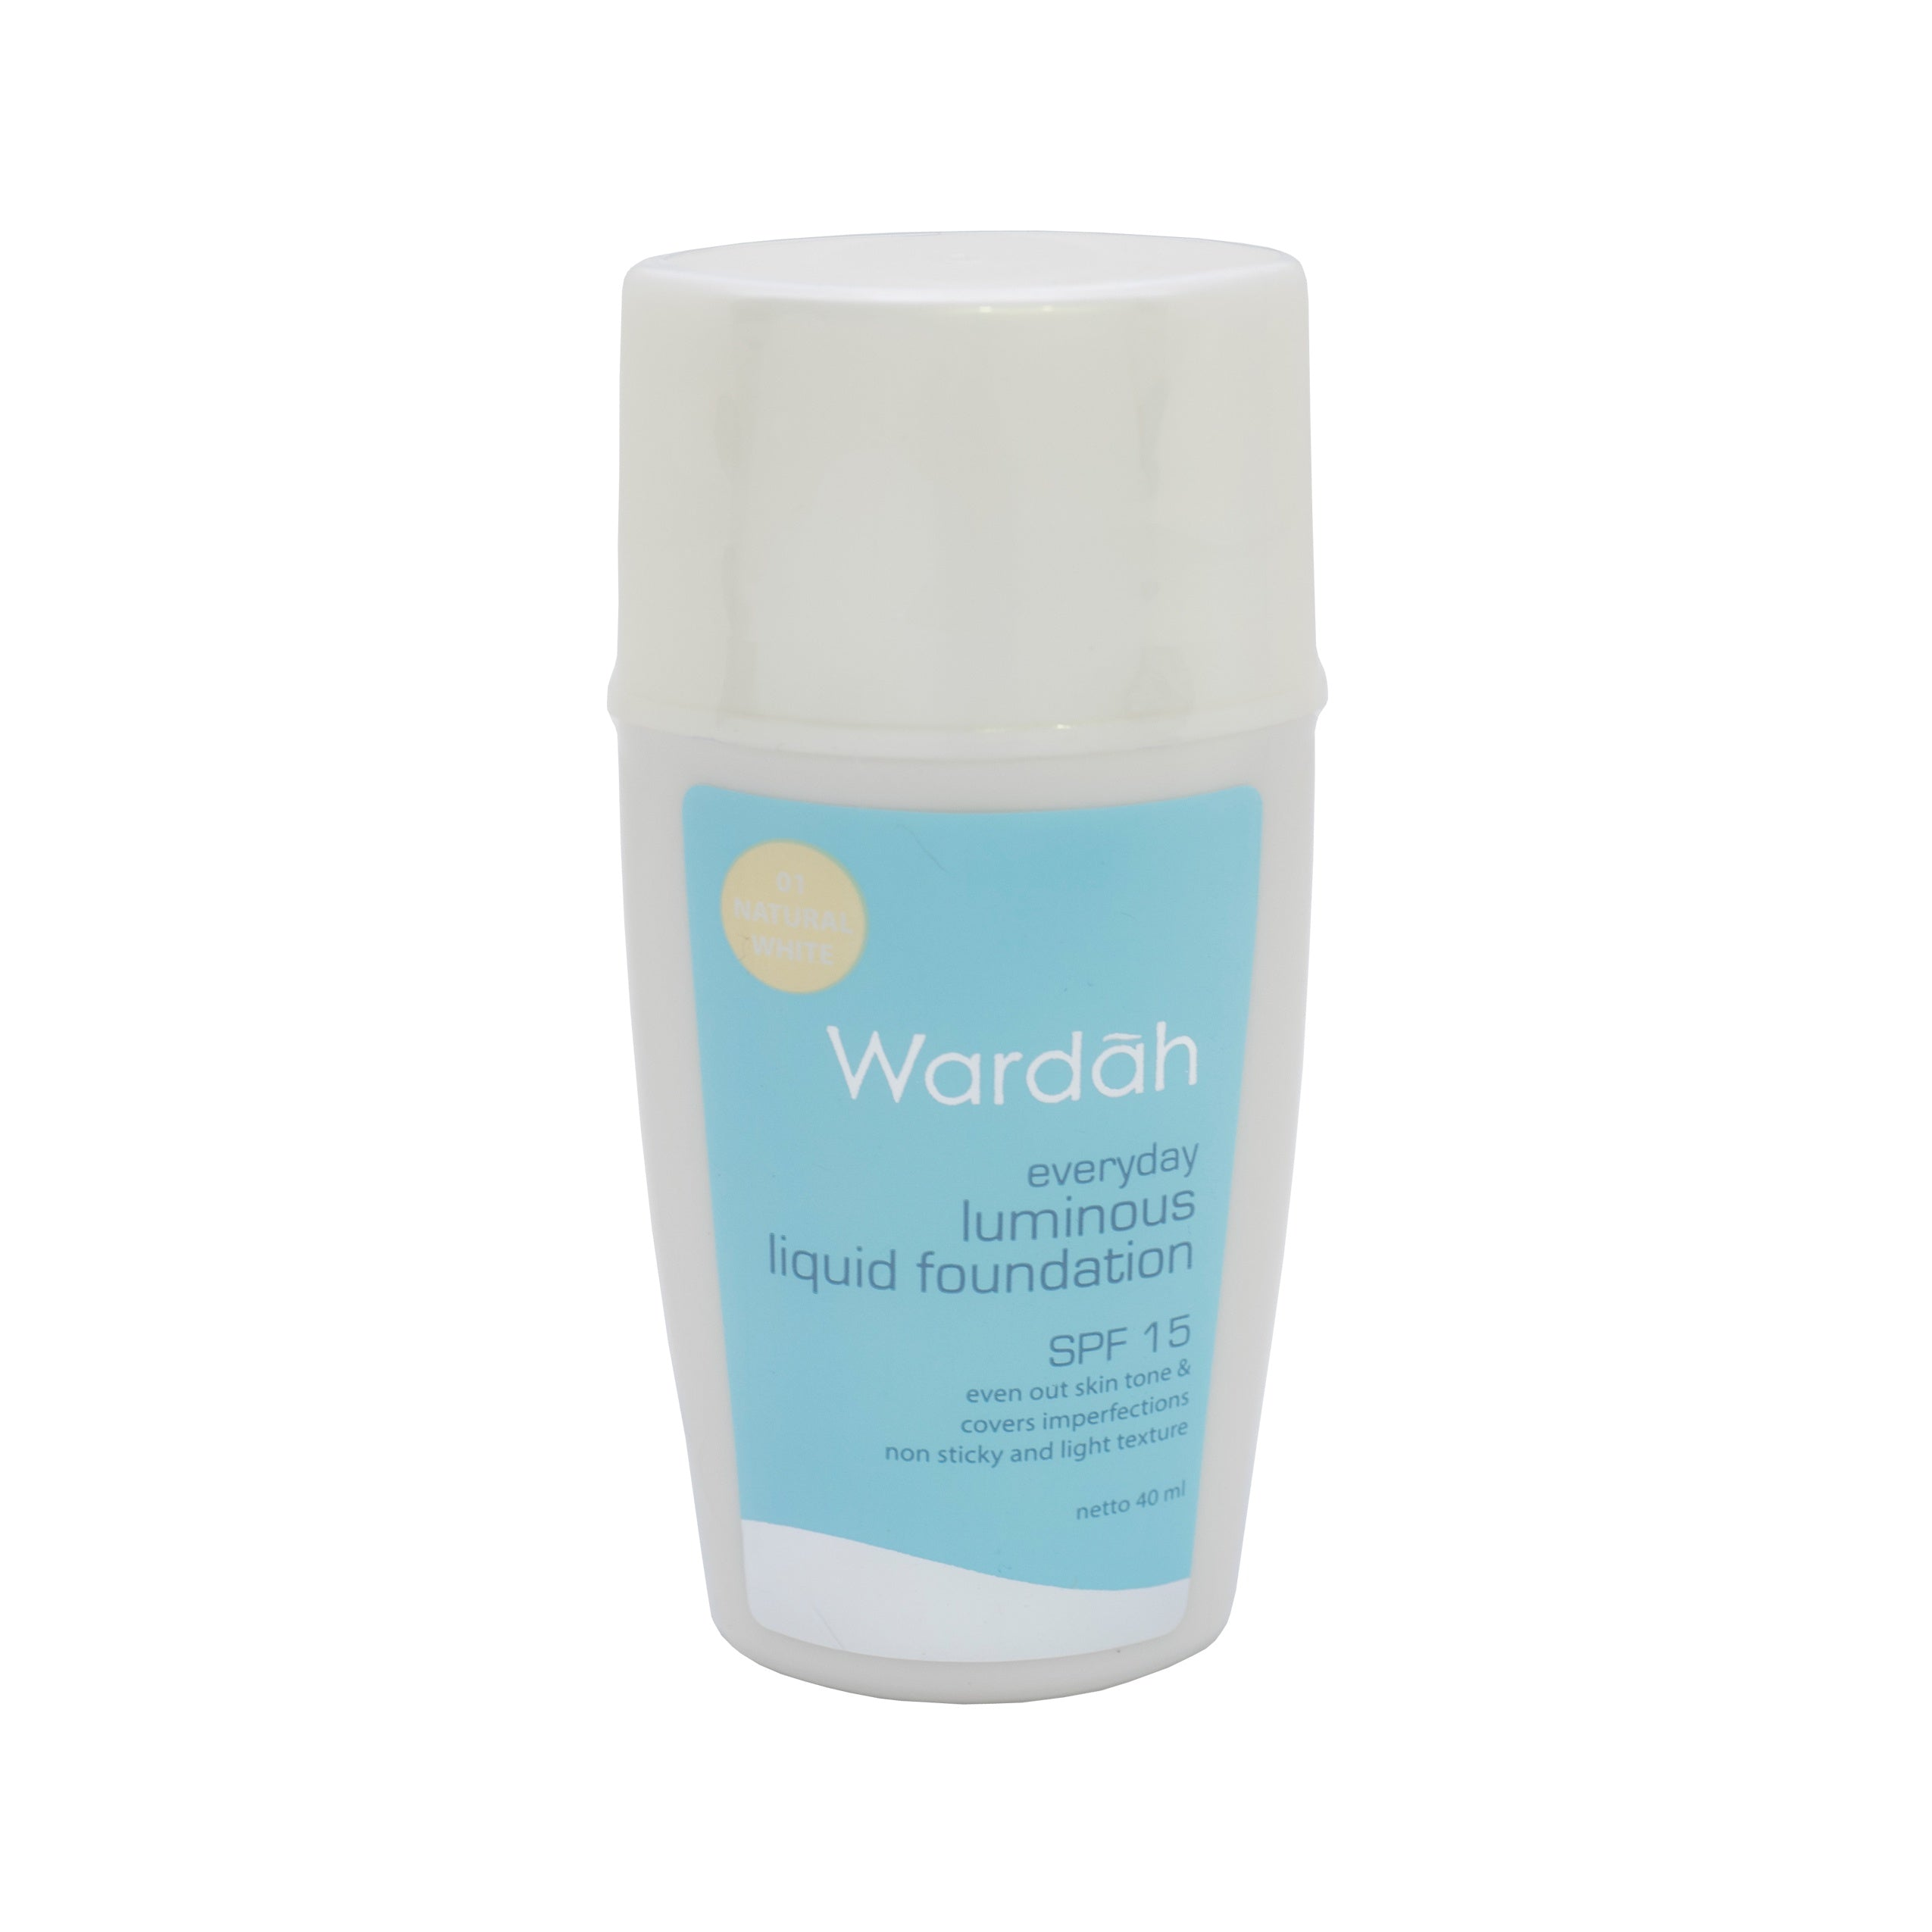 Wardah, Luminous Liquid Foundation SPF 15, 01 Natural White, 40 ml